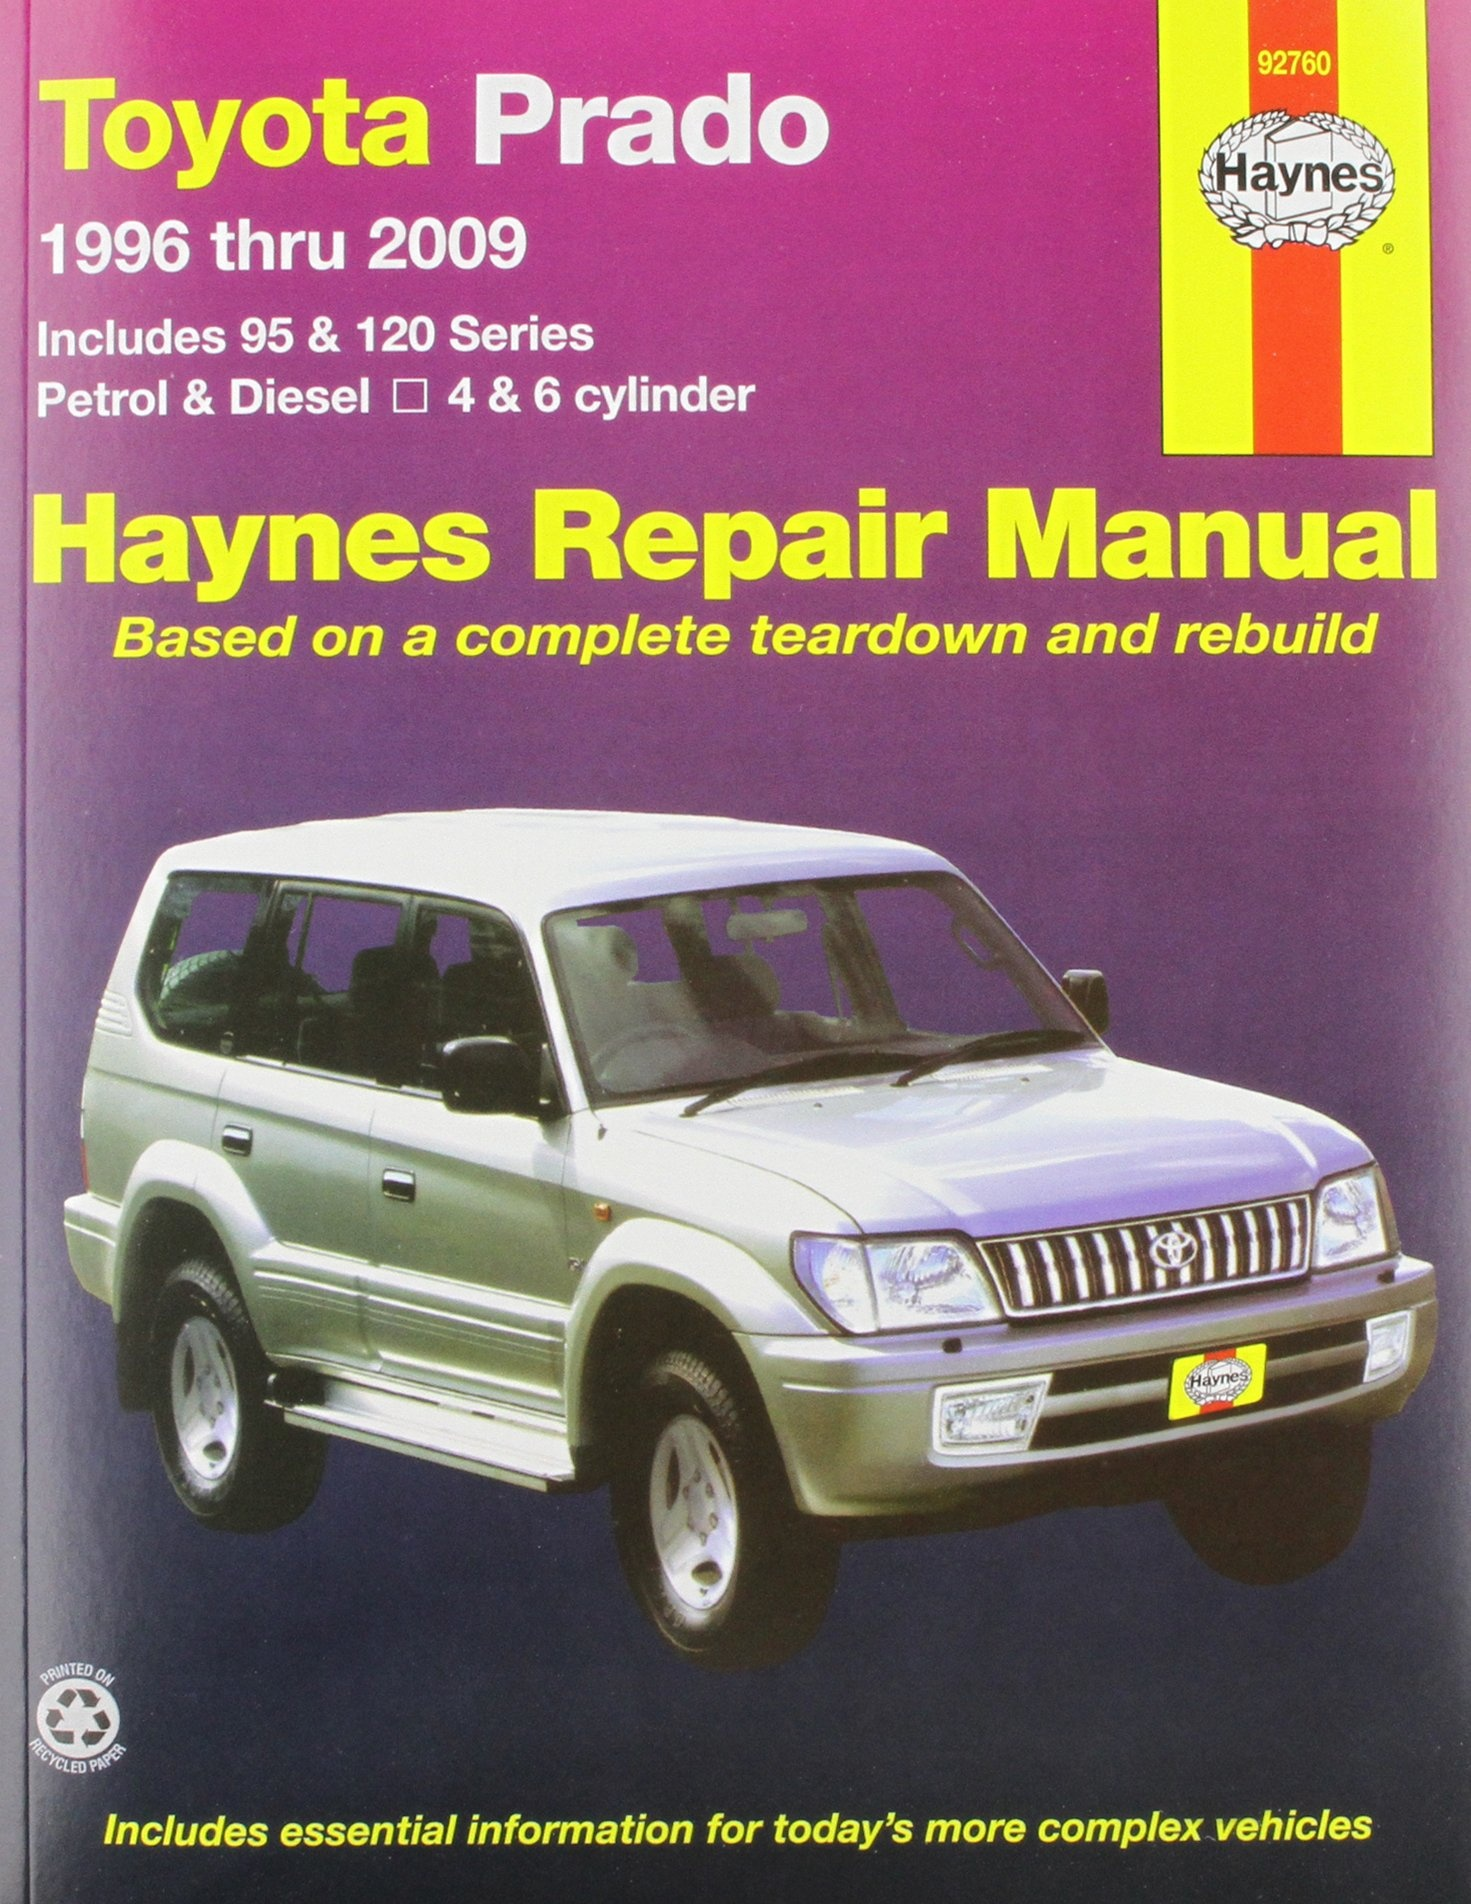 haynes manuals inc books buy online from fishpond co nz rh fishpond co nz 1990 Land Cruiser 2006 Land Cruiser